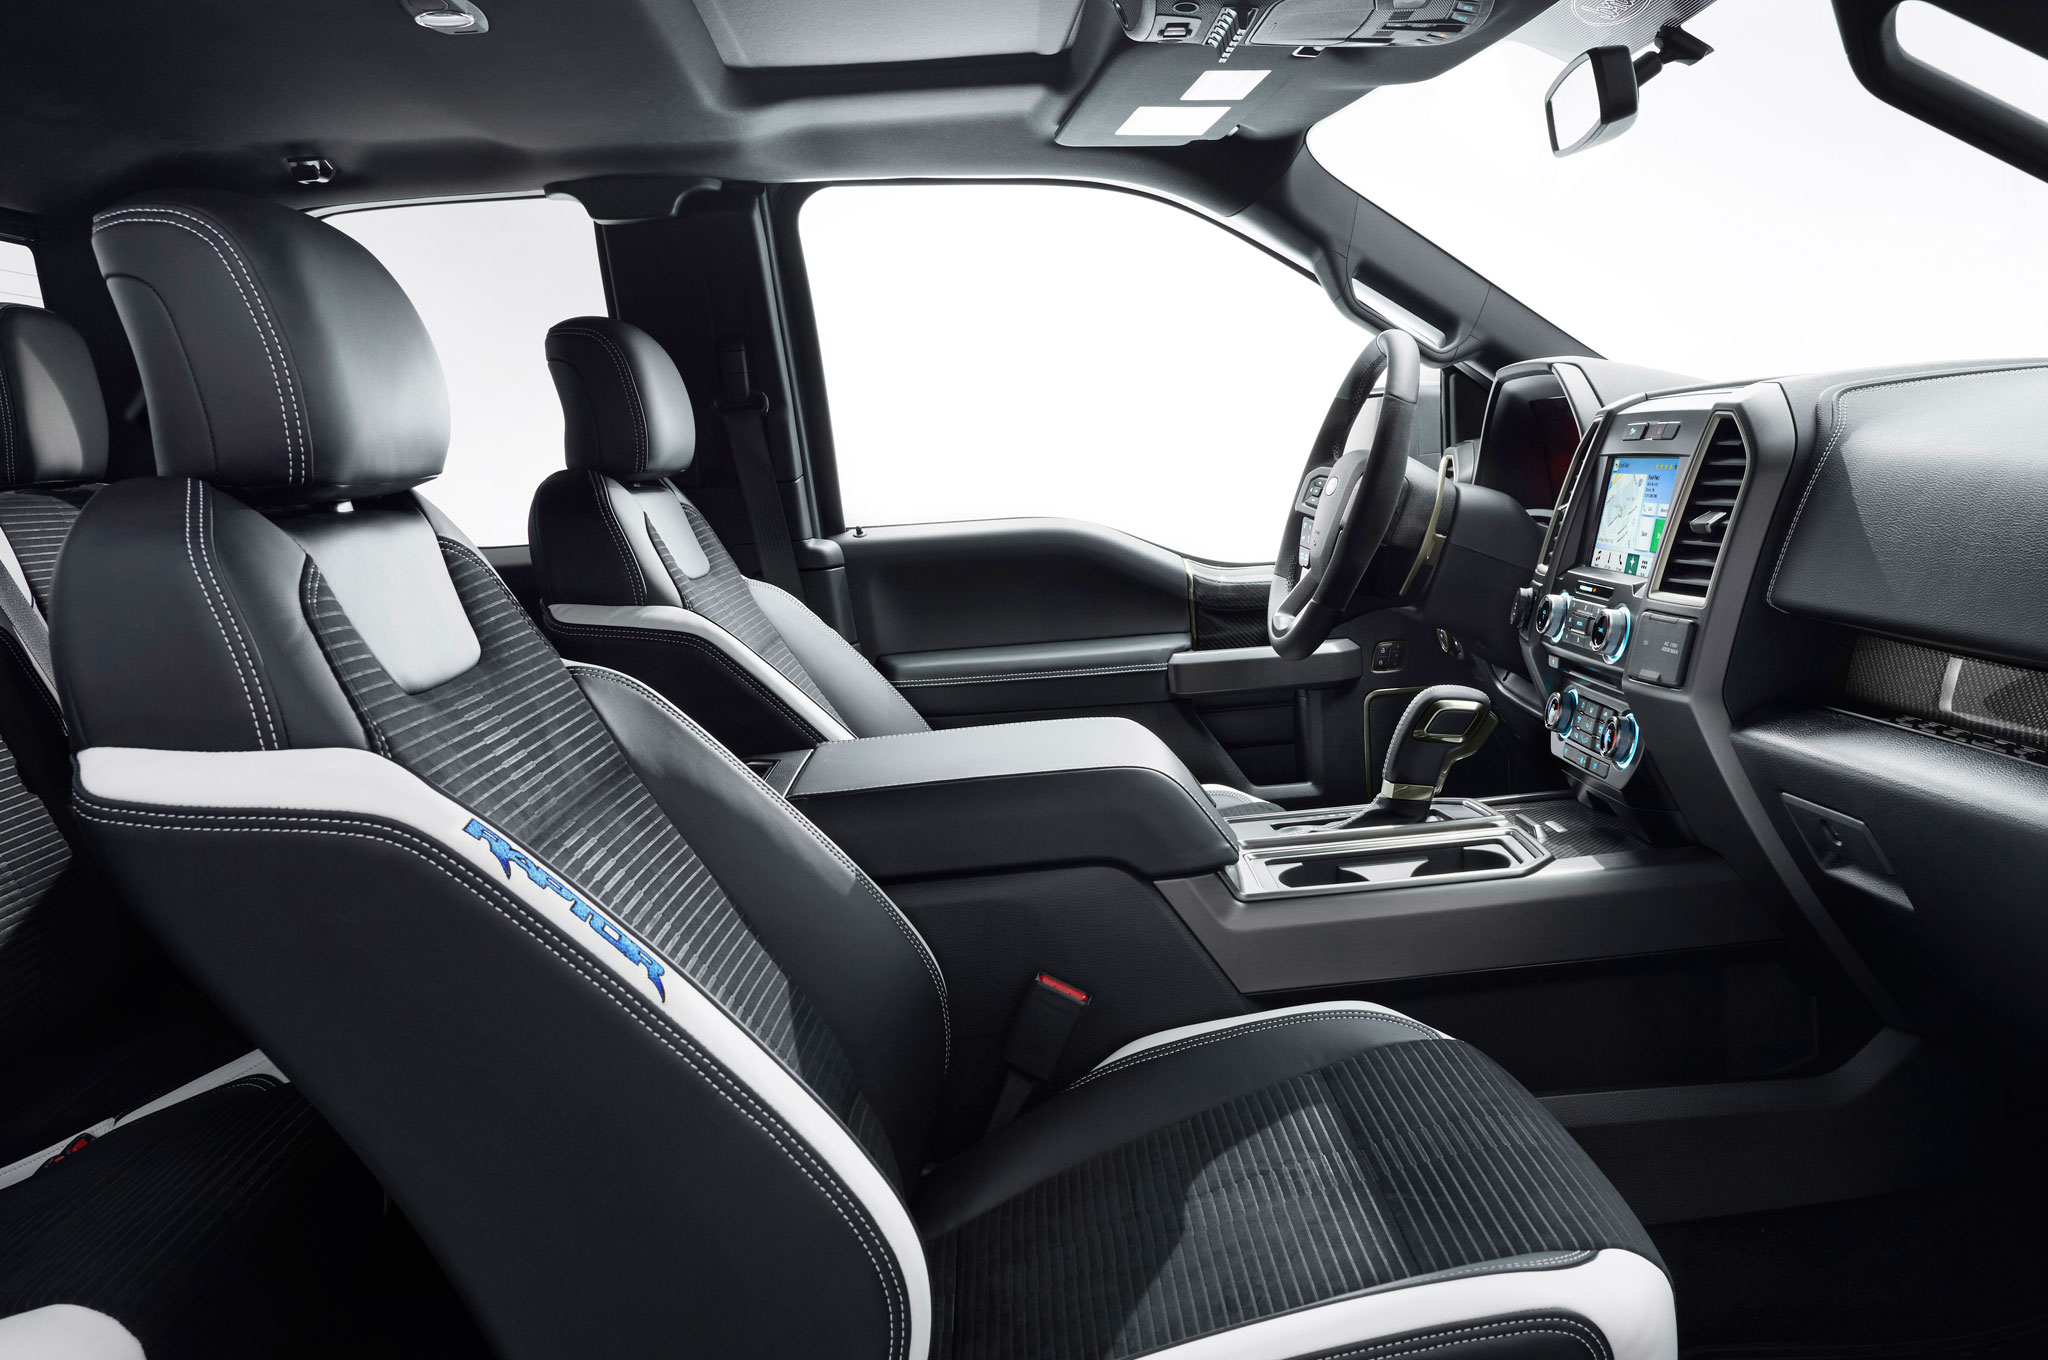 2017 ford f150 raptor interior right side view